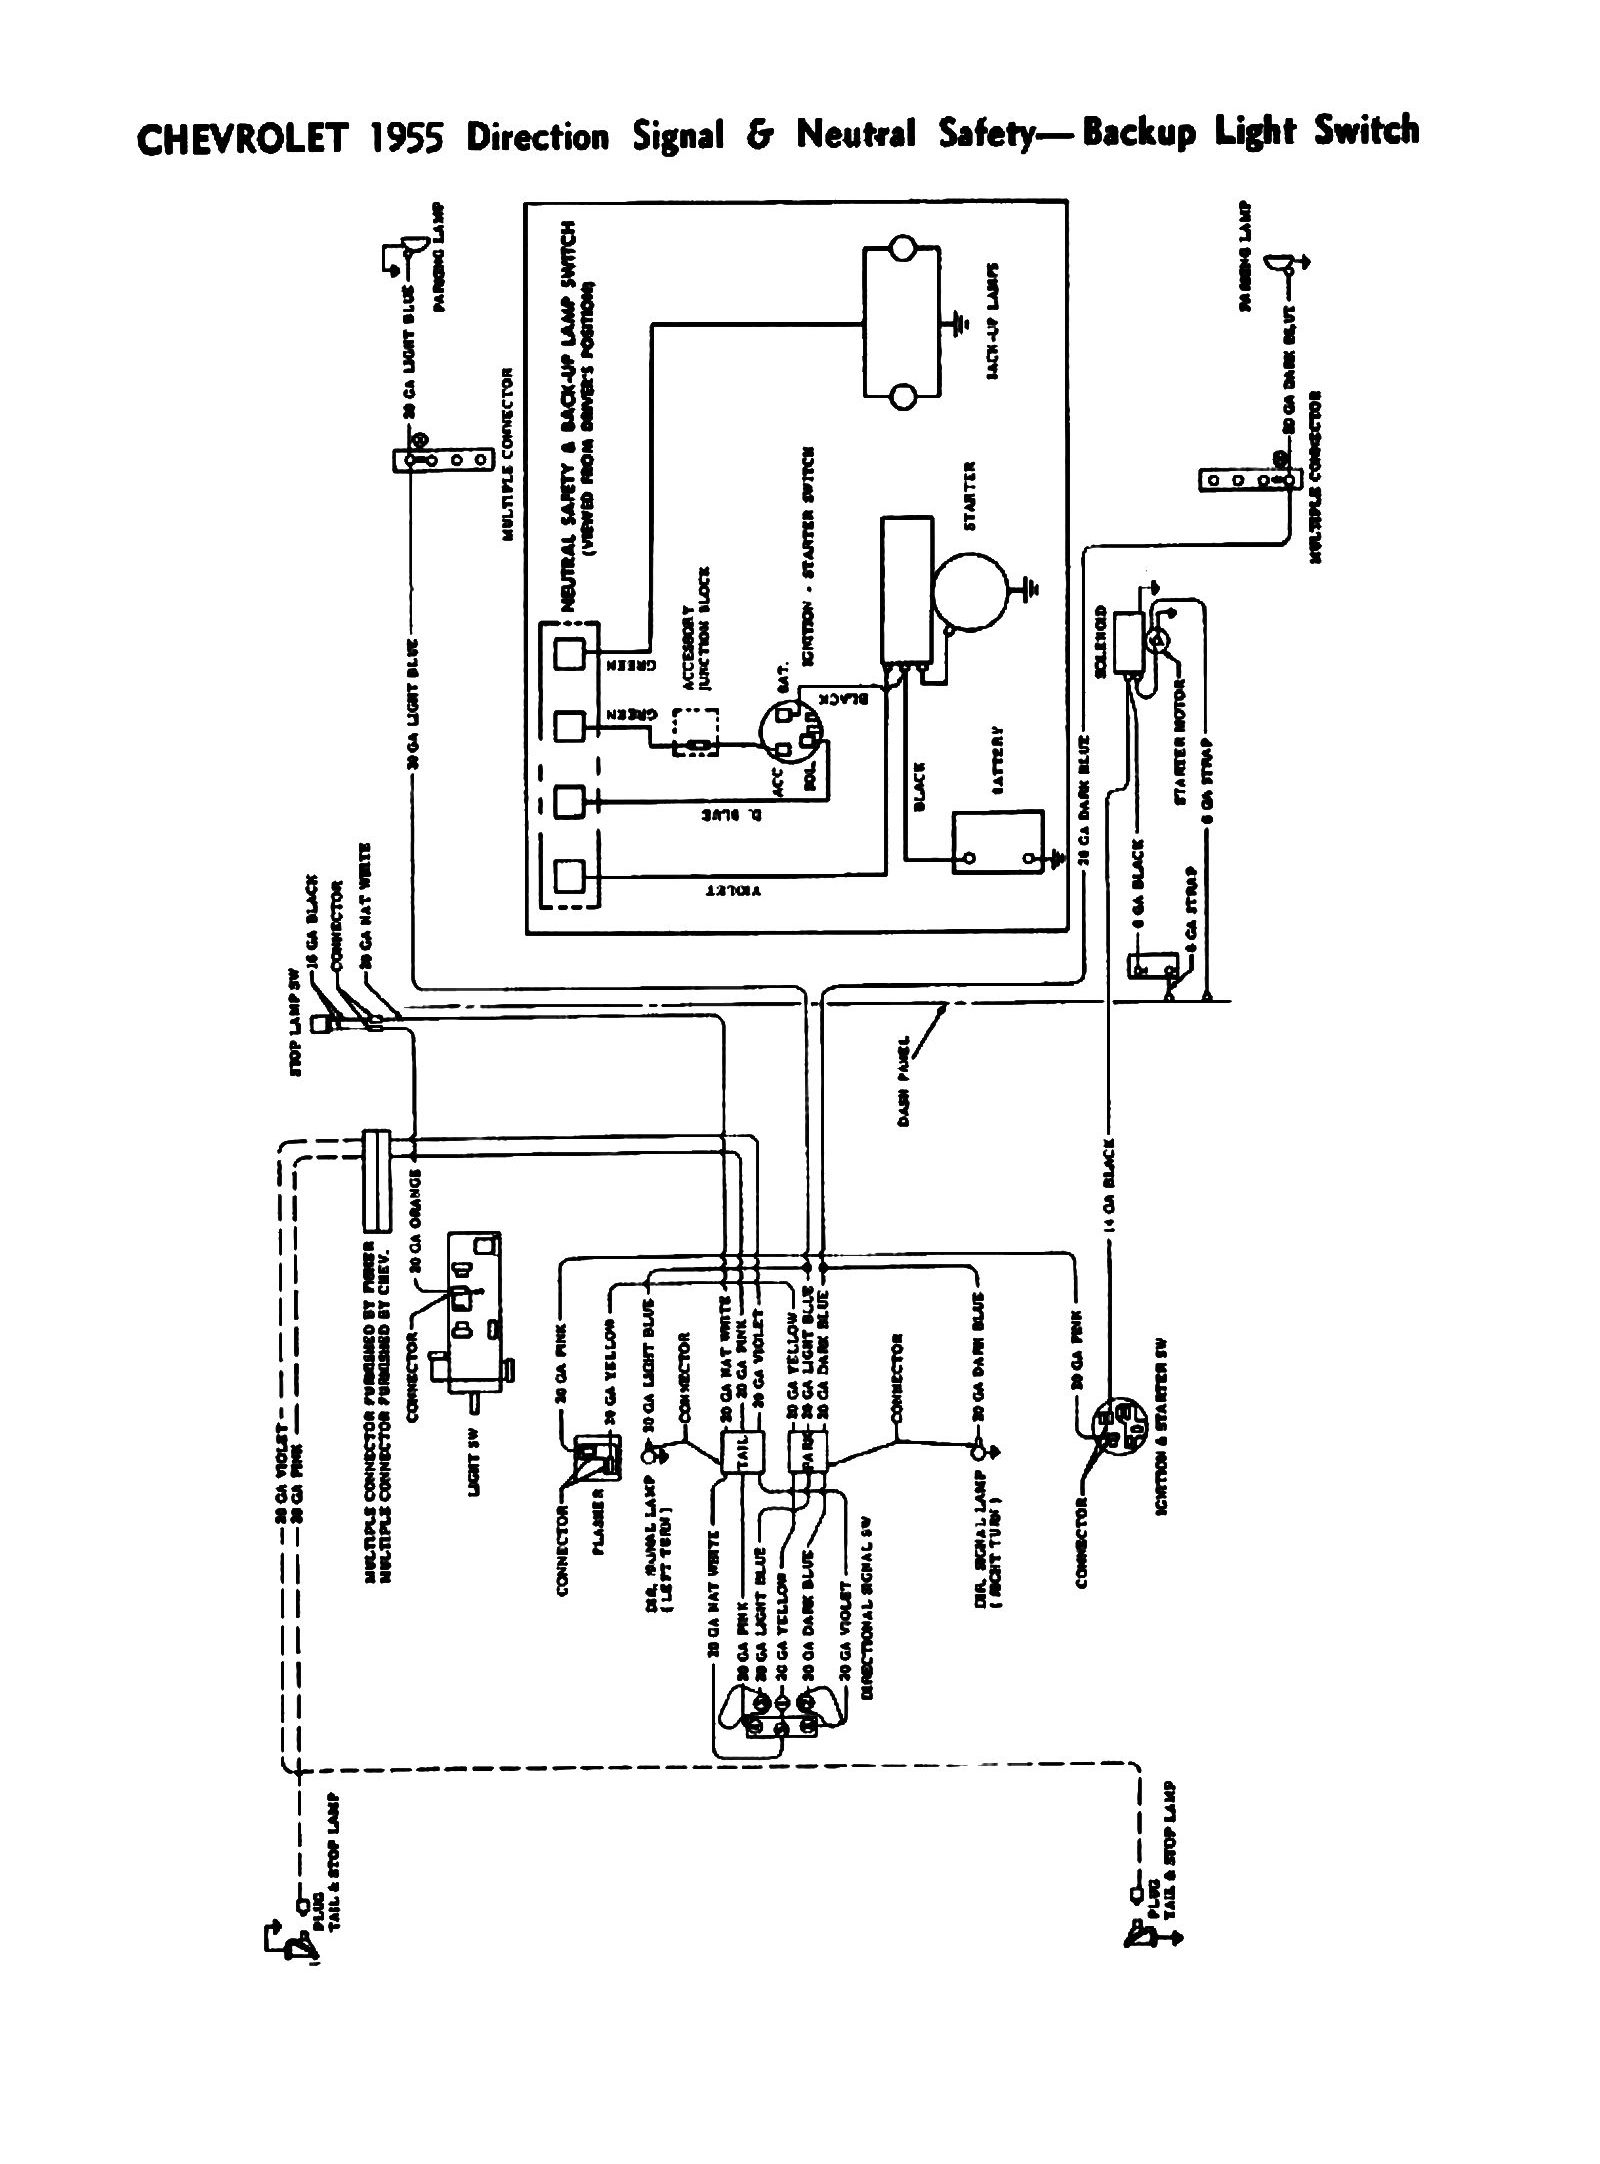 hight resolution of 56 pontiac wiring diagram wiring diagram schema img 1965 pontiac wiring diagram 1956 pontiac wiring diagram